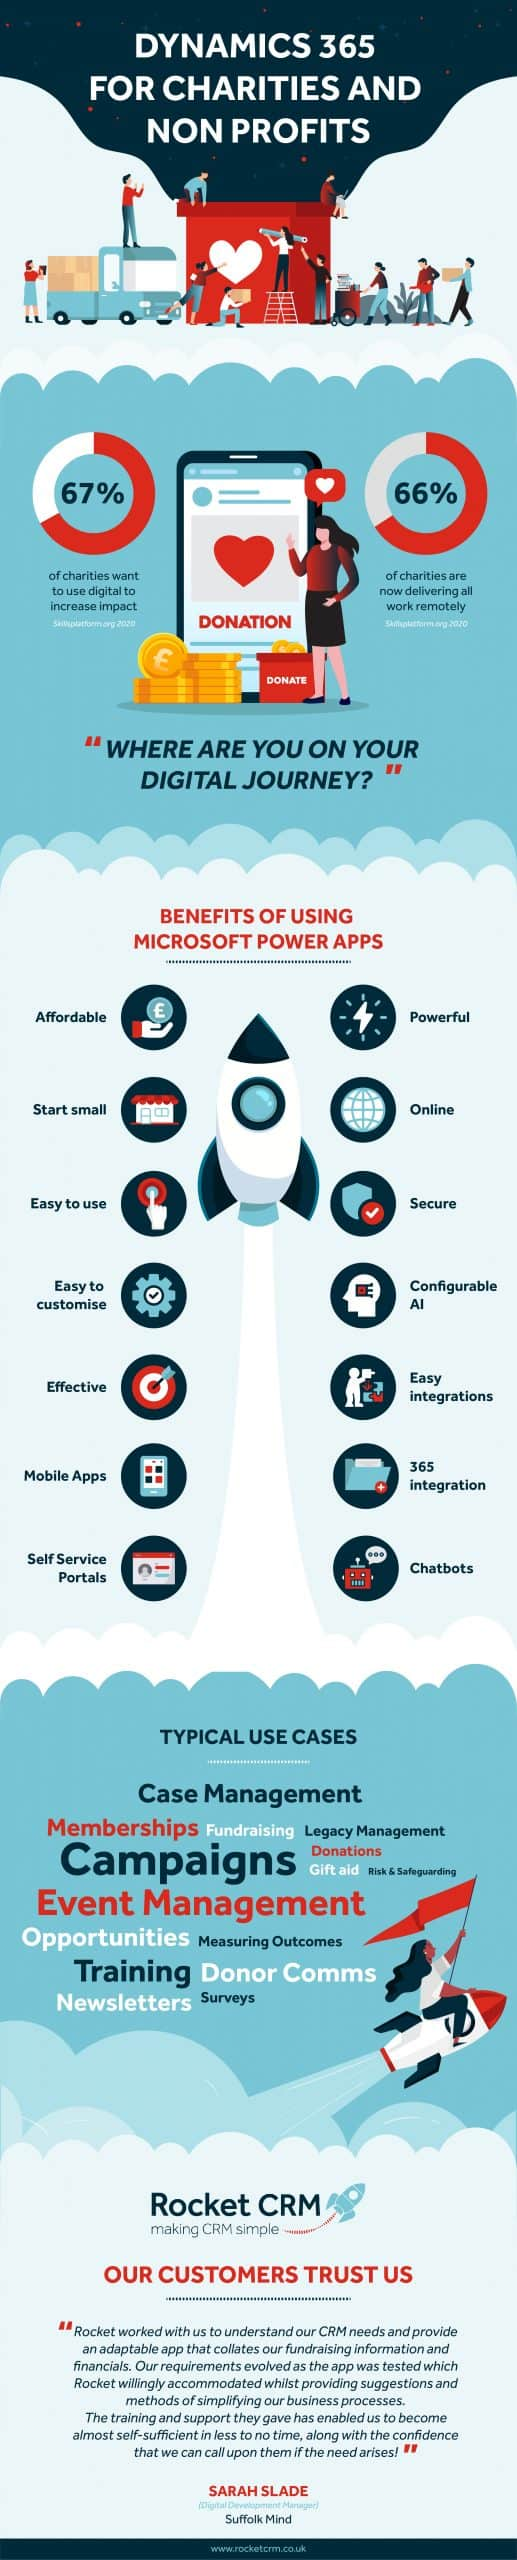 Infographic on Power Apps for Charities